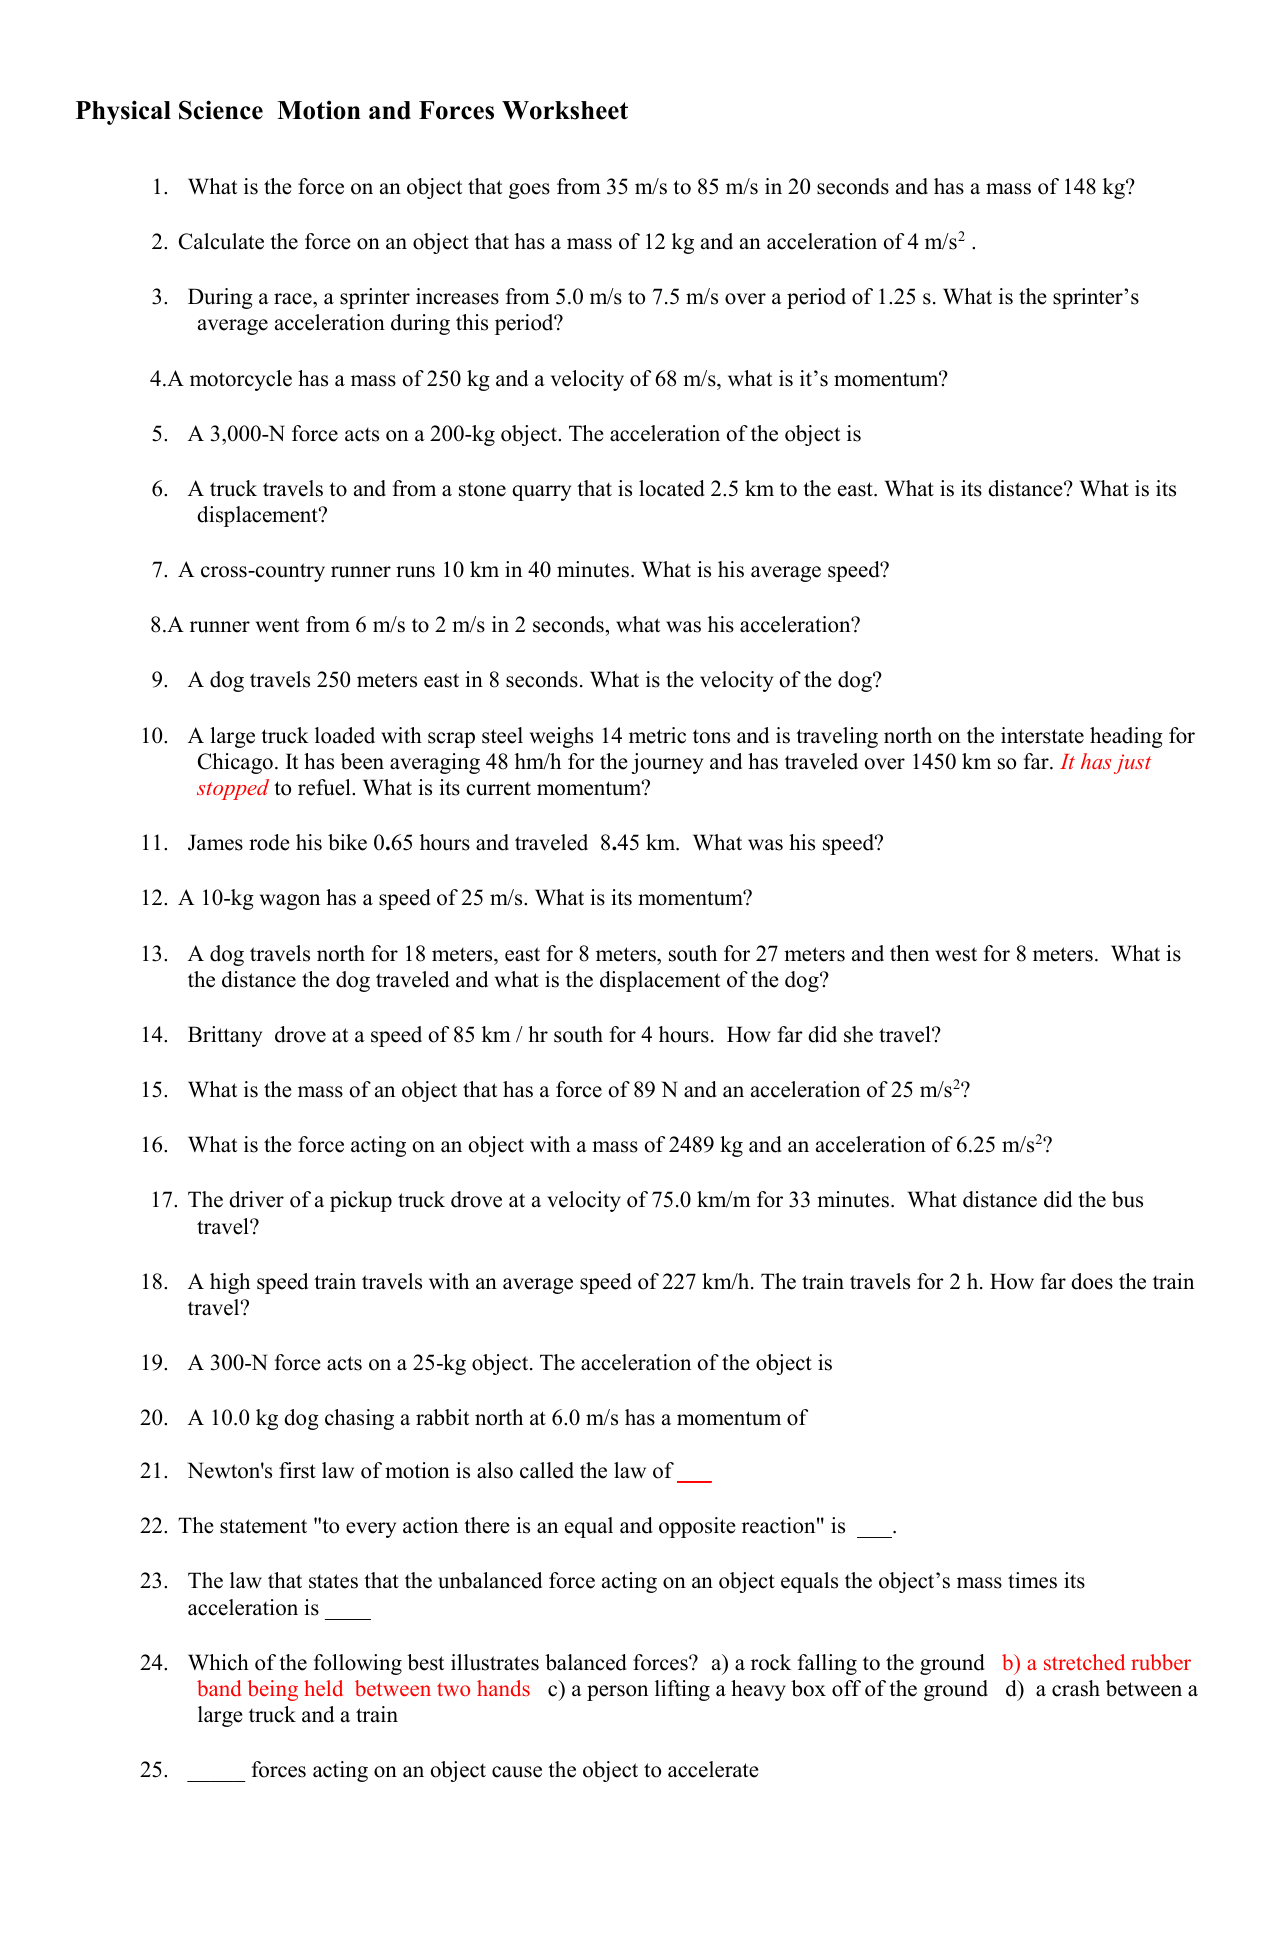 Physical science homework answers essays on the necklace by guy demaupassant